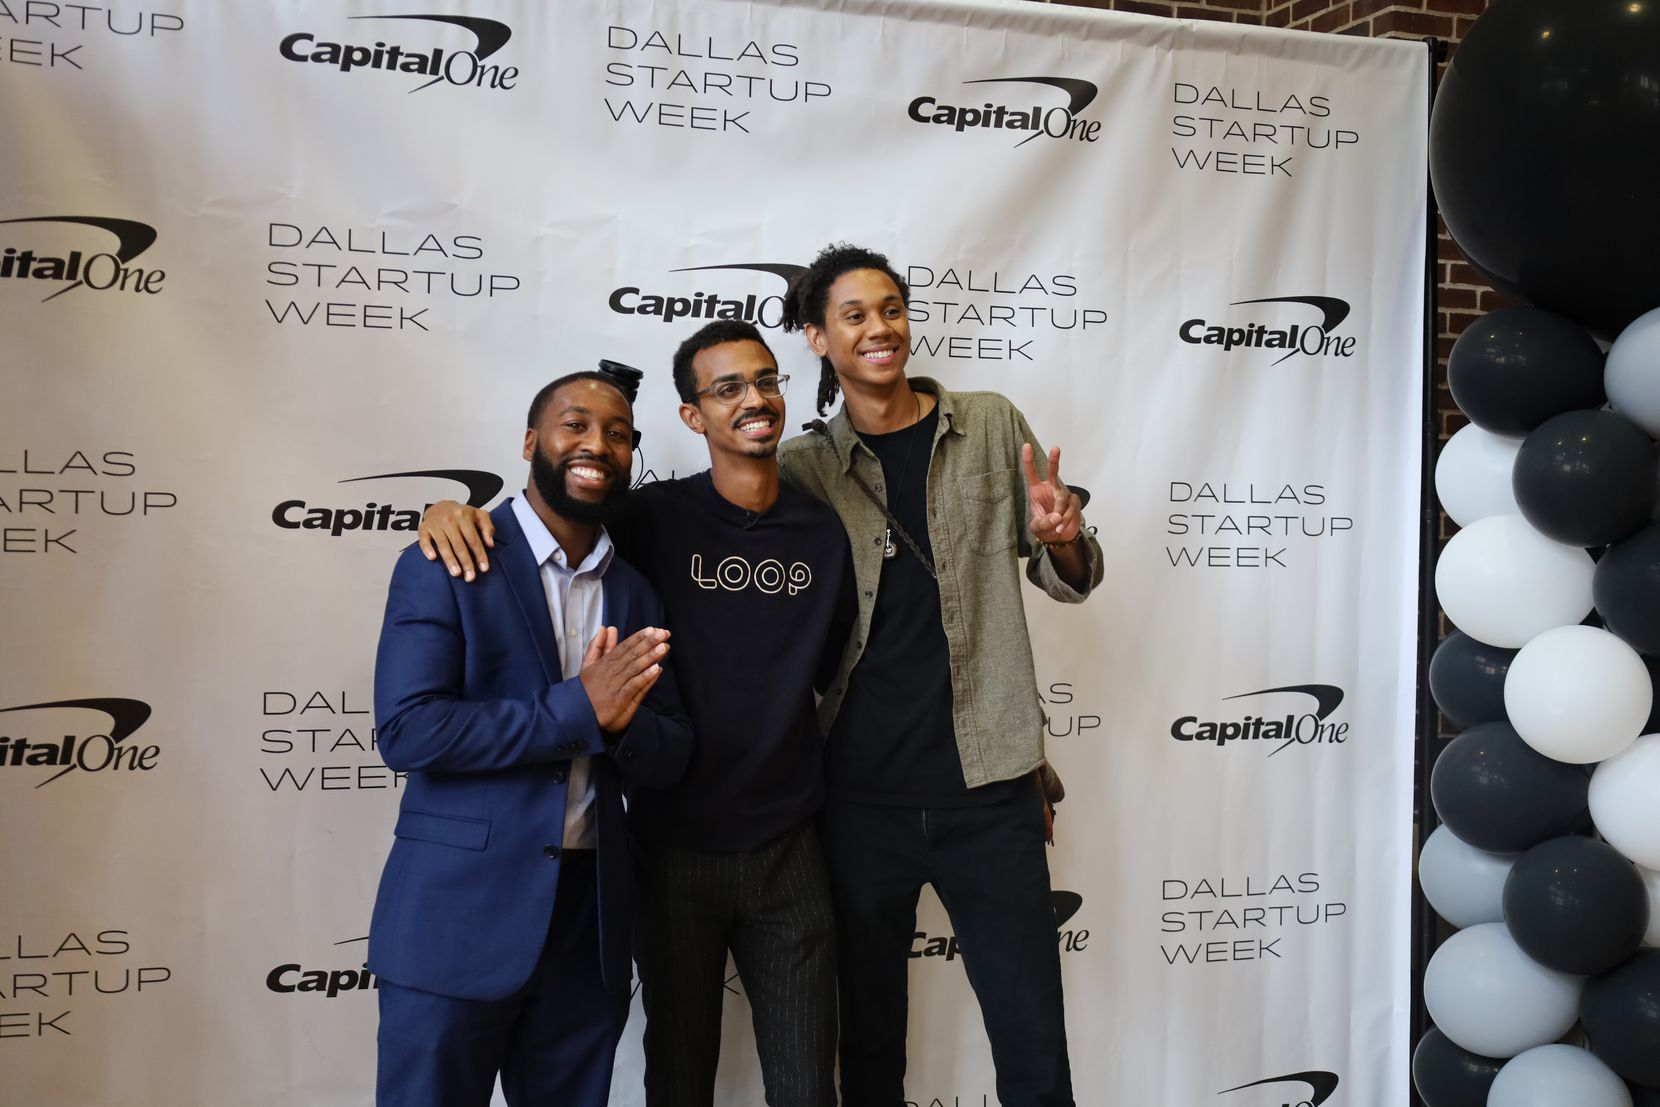 Since 2013, Dallas Startup Week has reached more than 13,000 entrepreneurs with hundreds of sessions and notable speakers. This year's hybrid sessions helped accommodate participants' needs in our ever-changing climate.